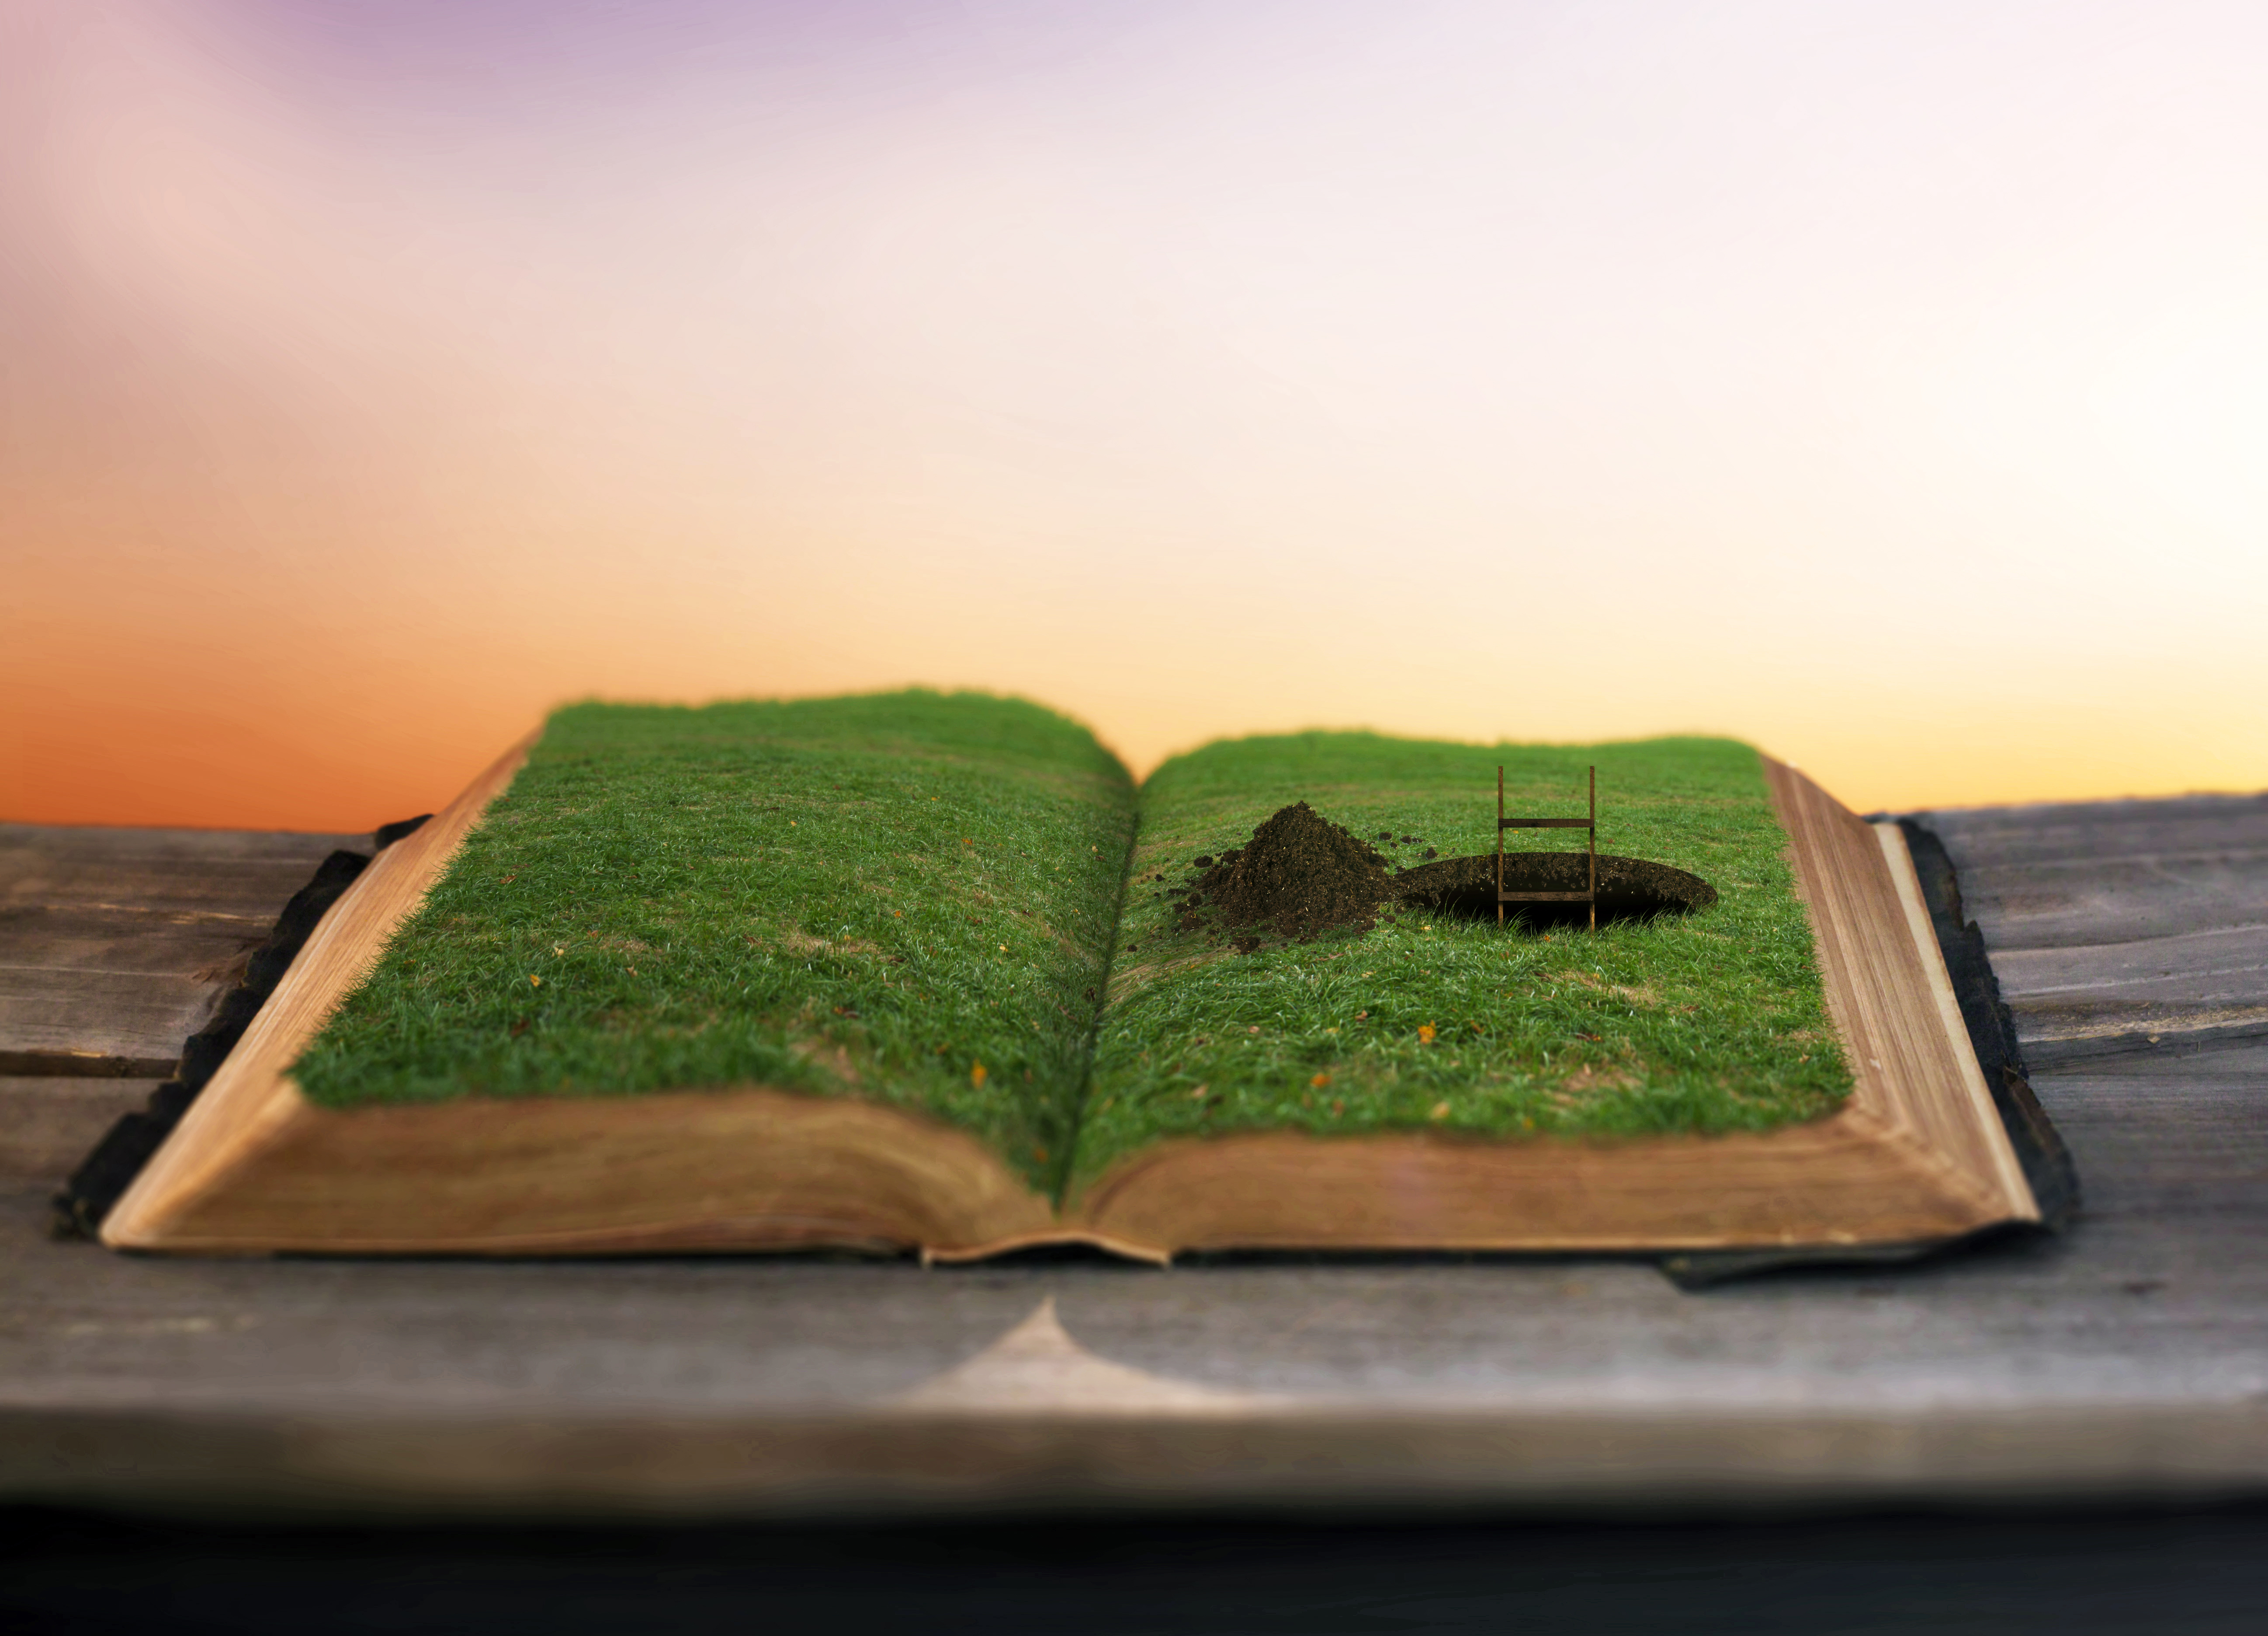 surreal-image-of-a-pathway-being-dug-inside-a-bible_rQUIZkMeR.jpg